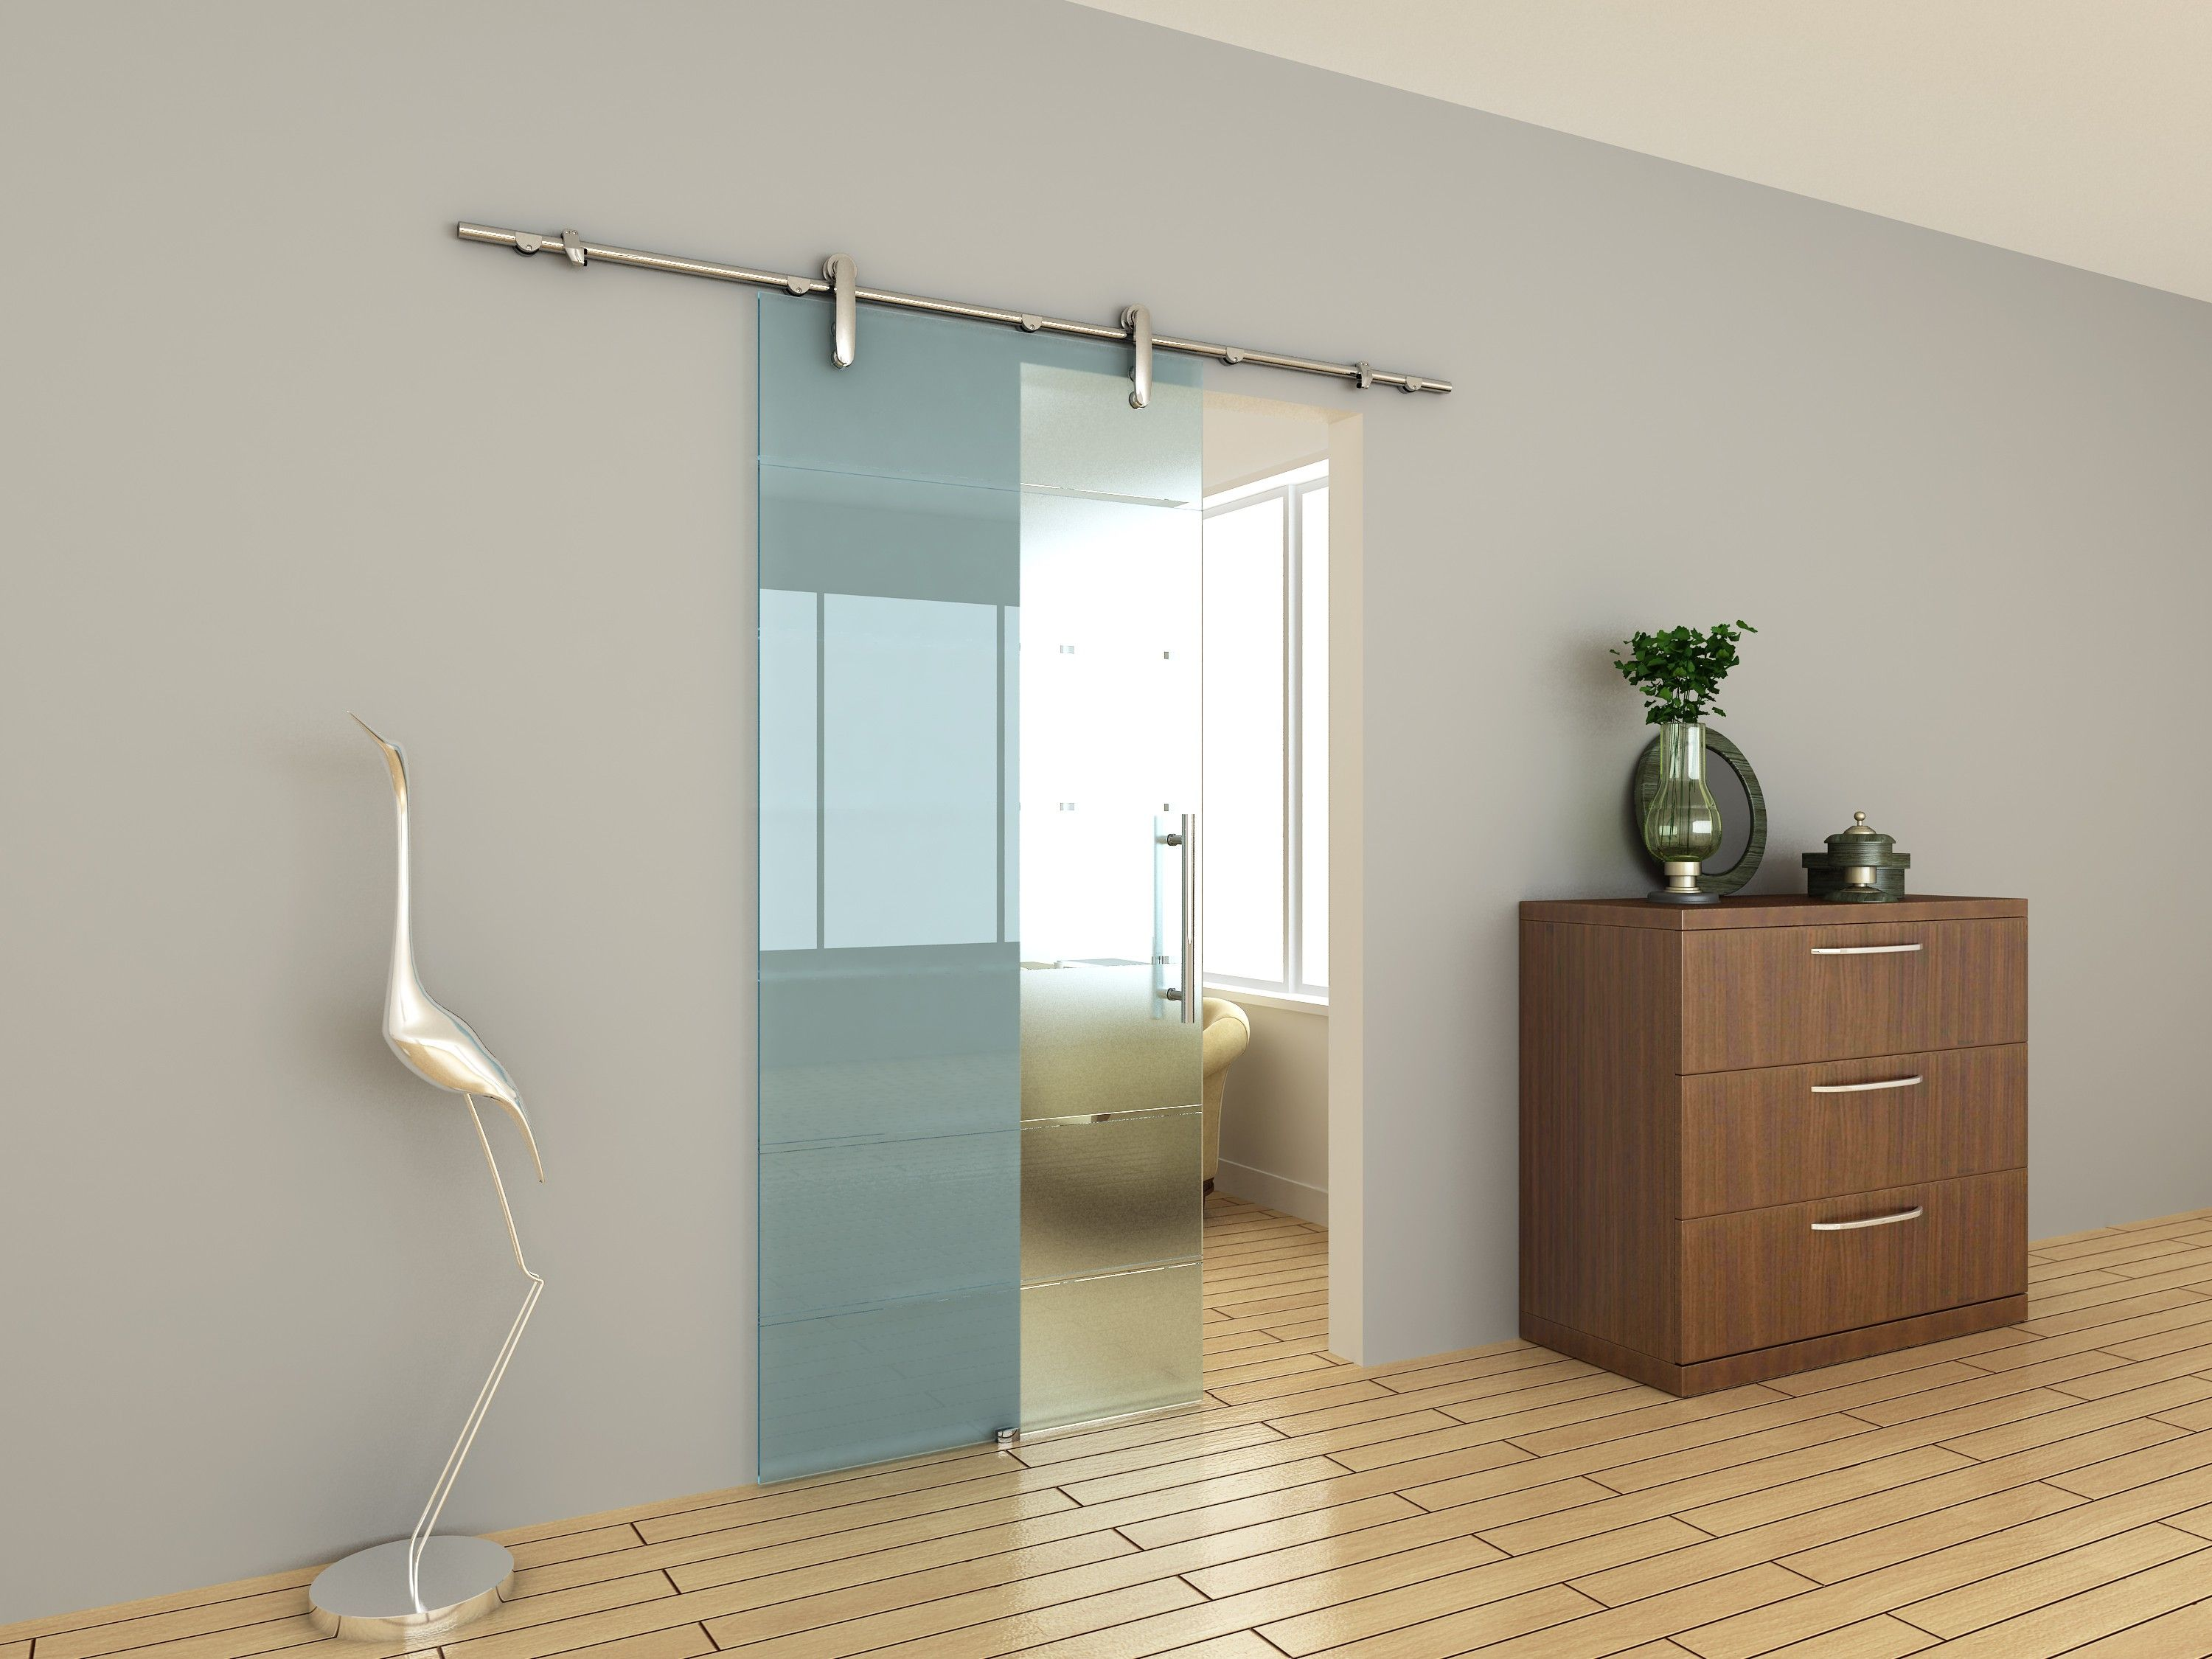 Bathroom Doors Pertaining To Bathroom Doors And More Ideas For